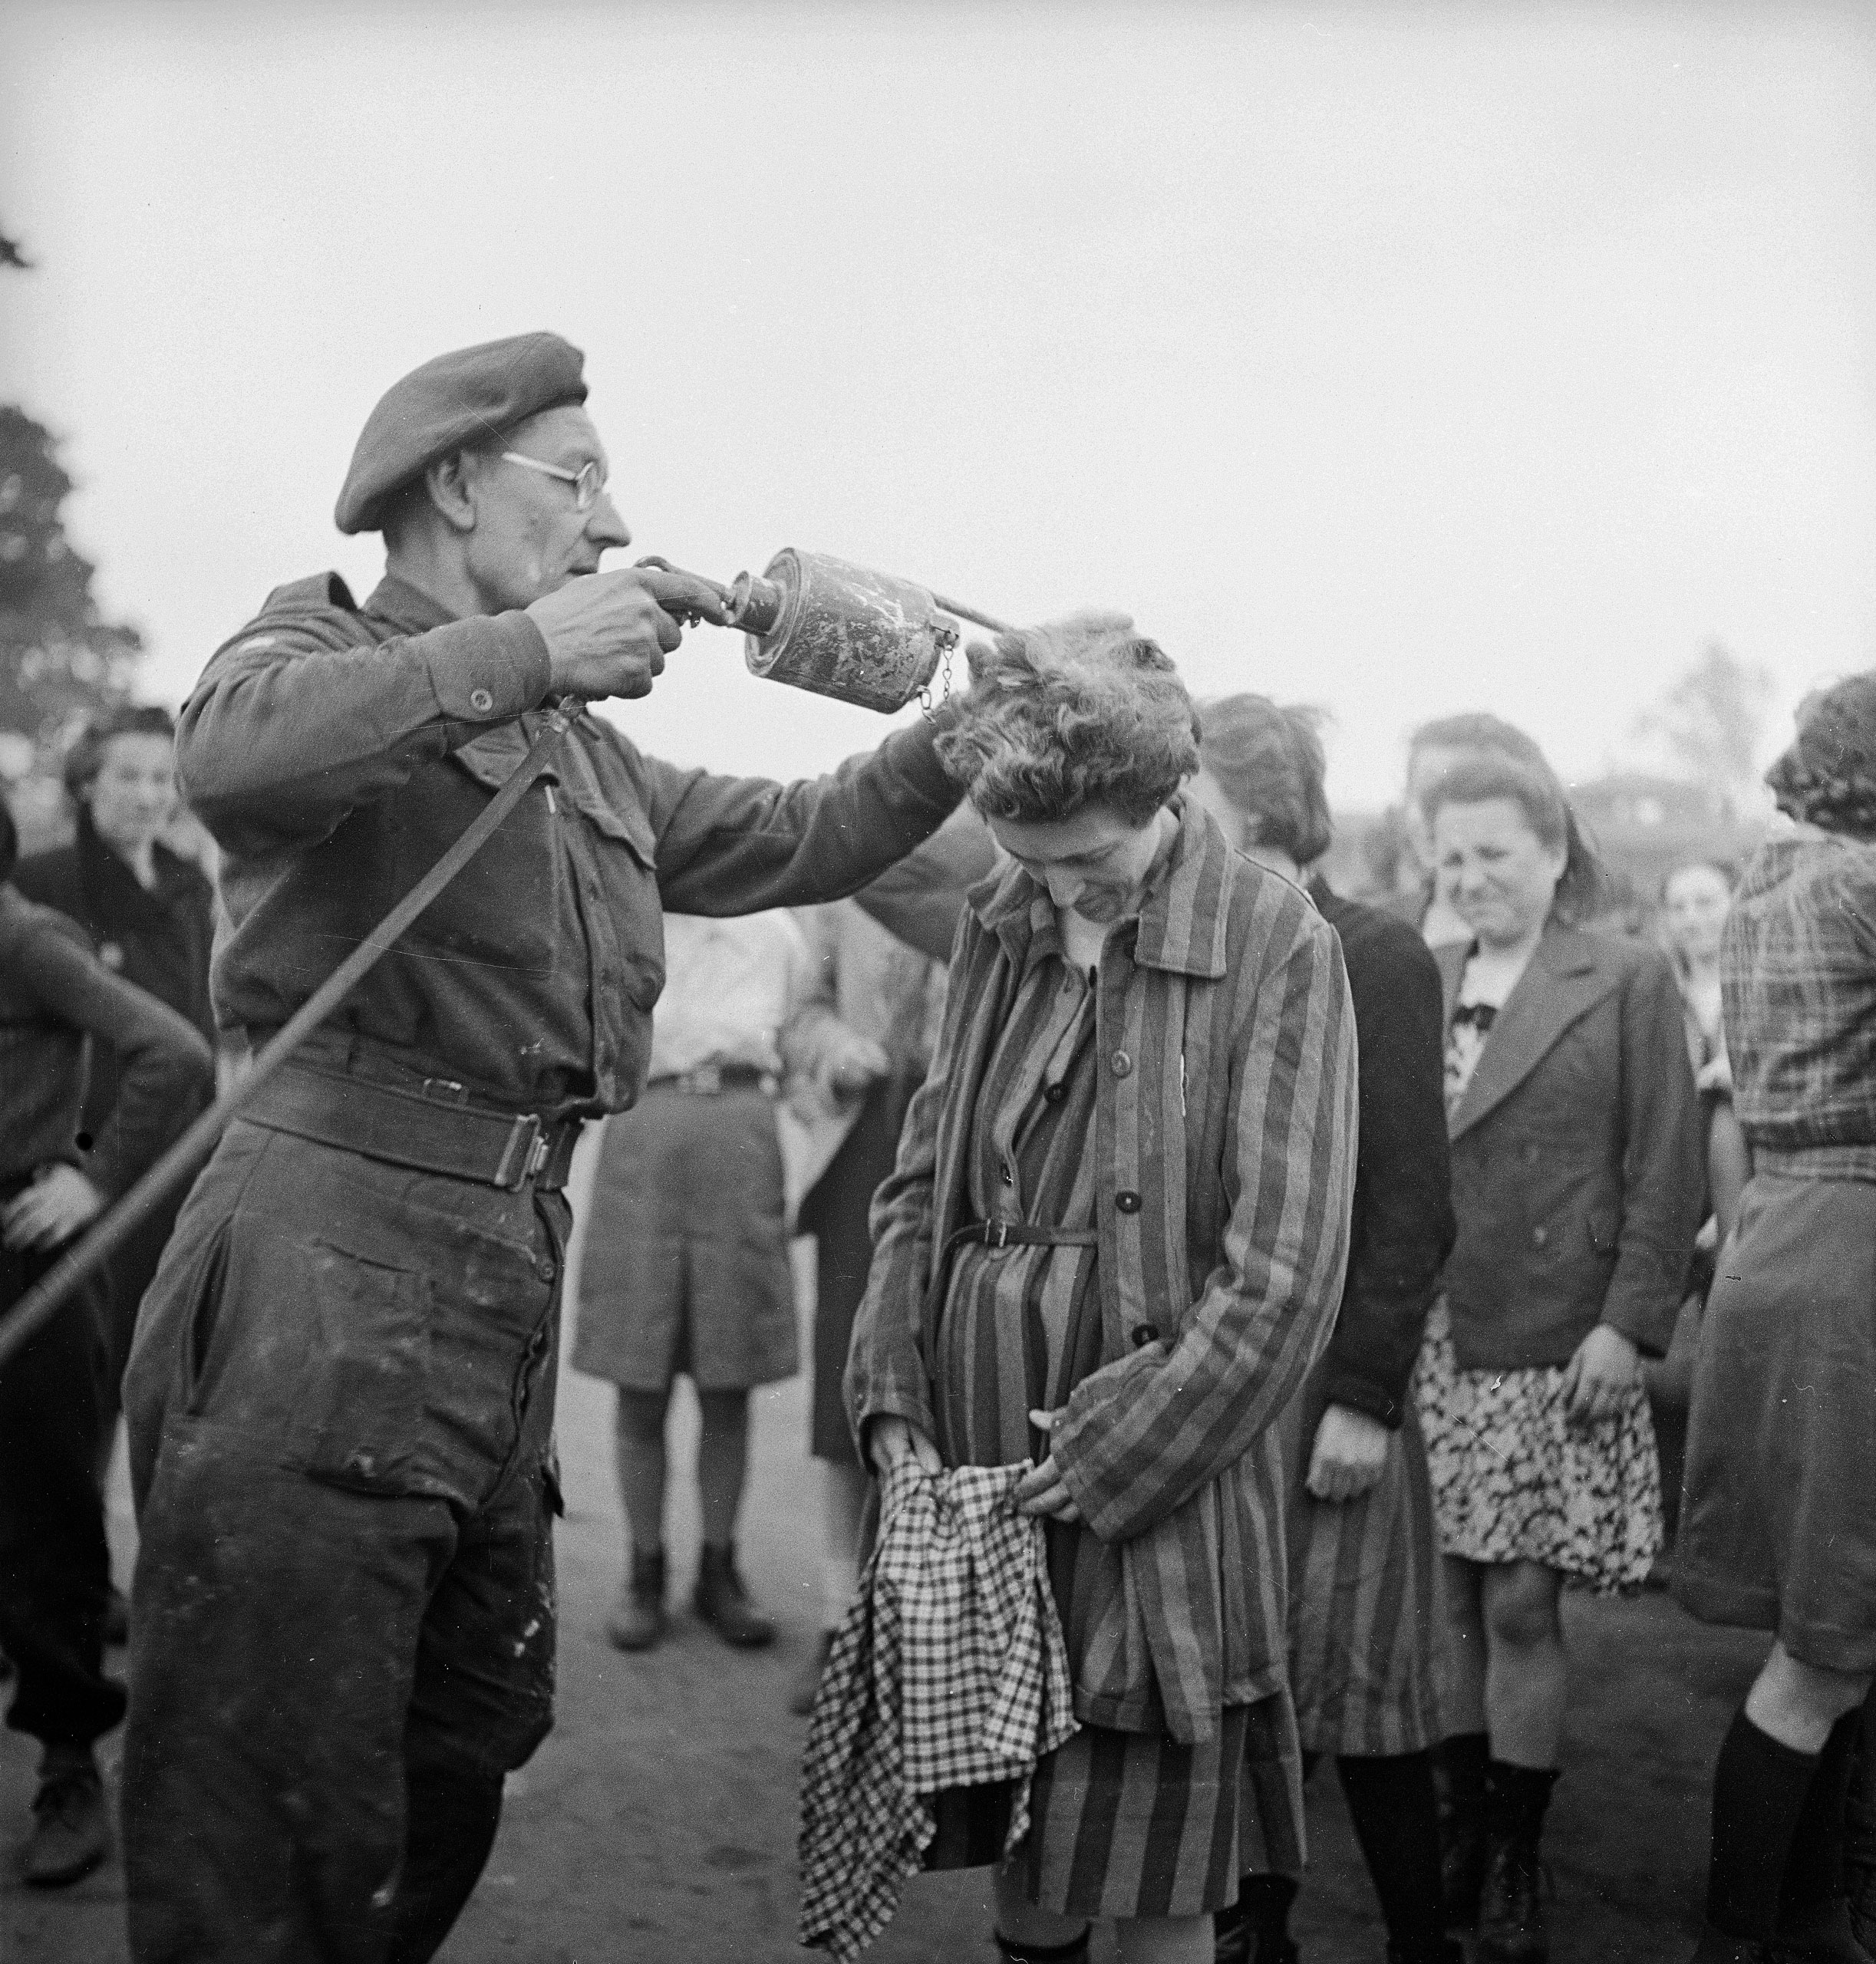 A British doctor uses DDT while delousing newly freed female prisoners at the Bergen-Belsen concentration camp, 1945.